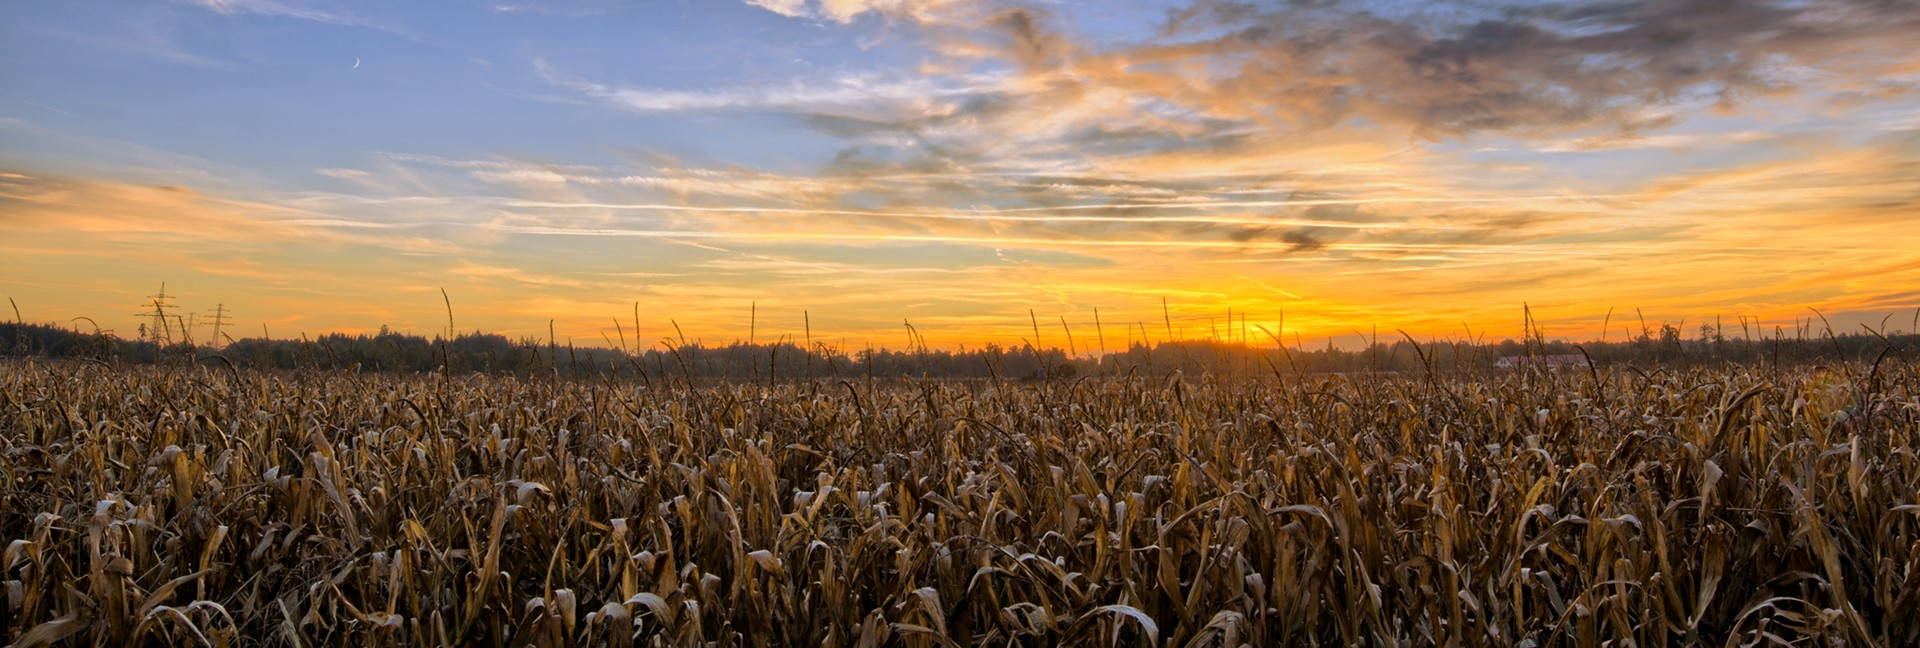 Ripe Cornfield at Sunset